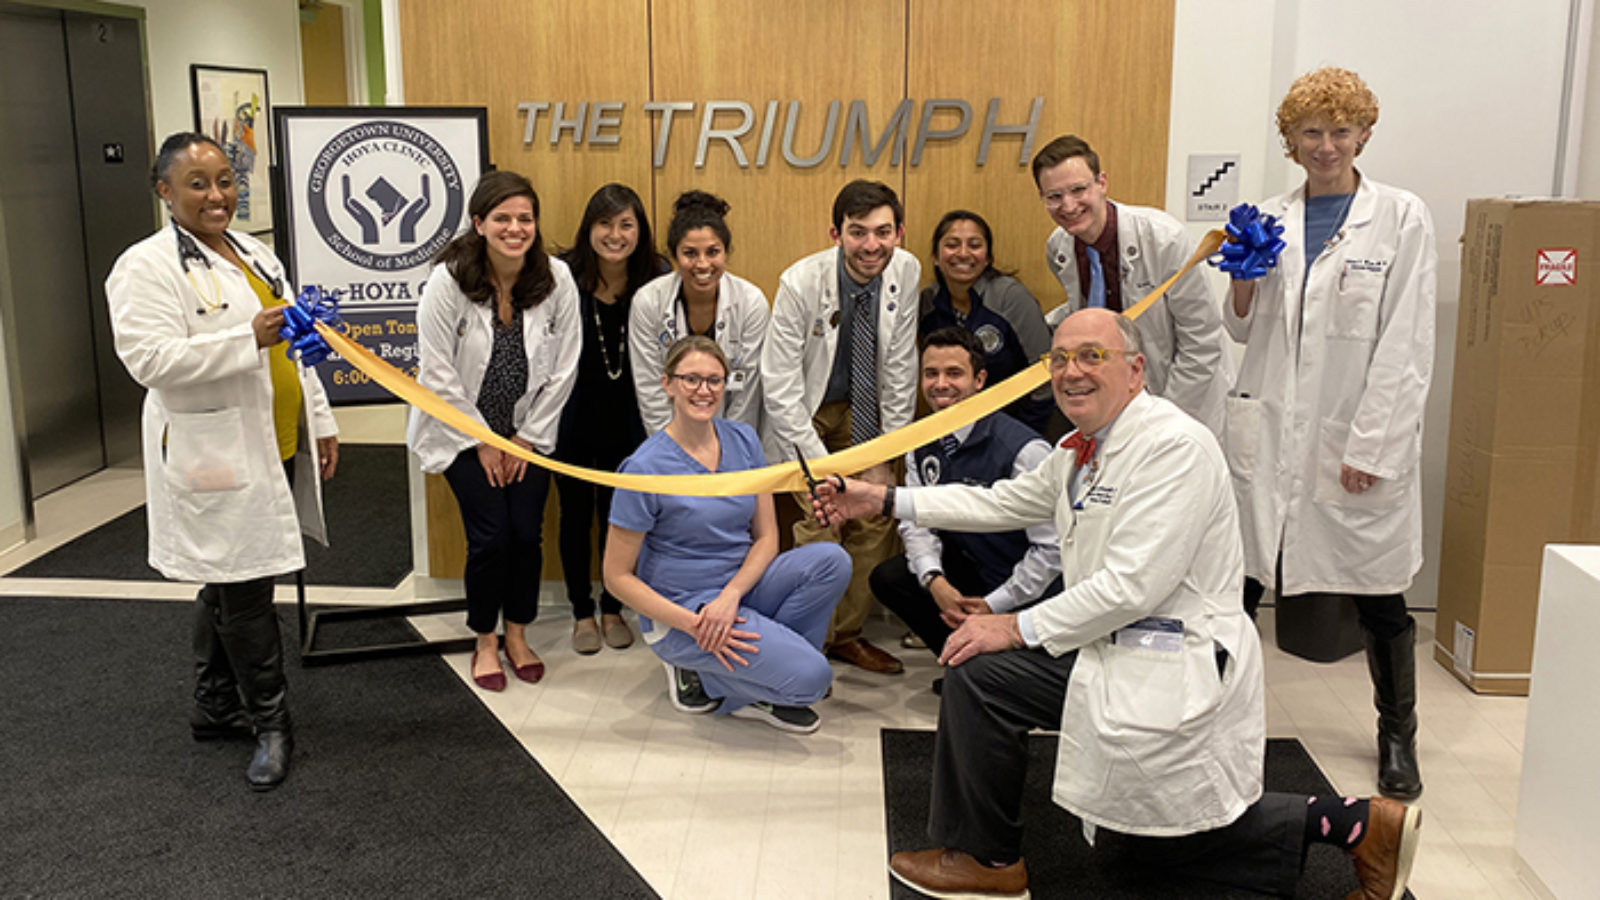 DDr. Stephen Ray Mitchell kneels on the floor cutting a yellow ribbon held by two other doctors as doctors and other people kneel or squat in front of a sign reading The Triumph